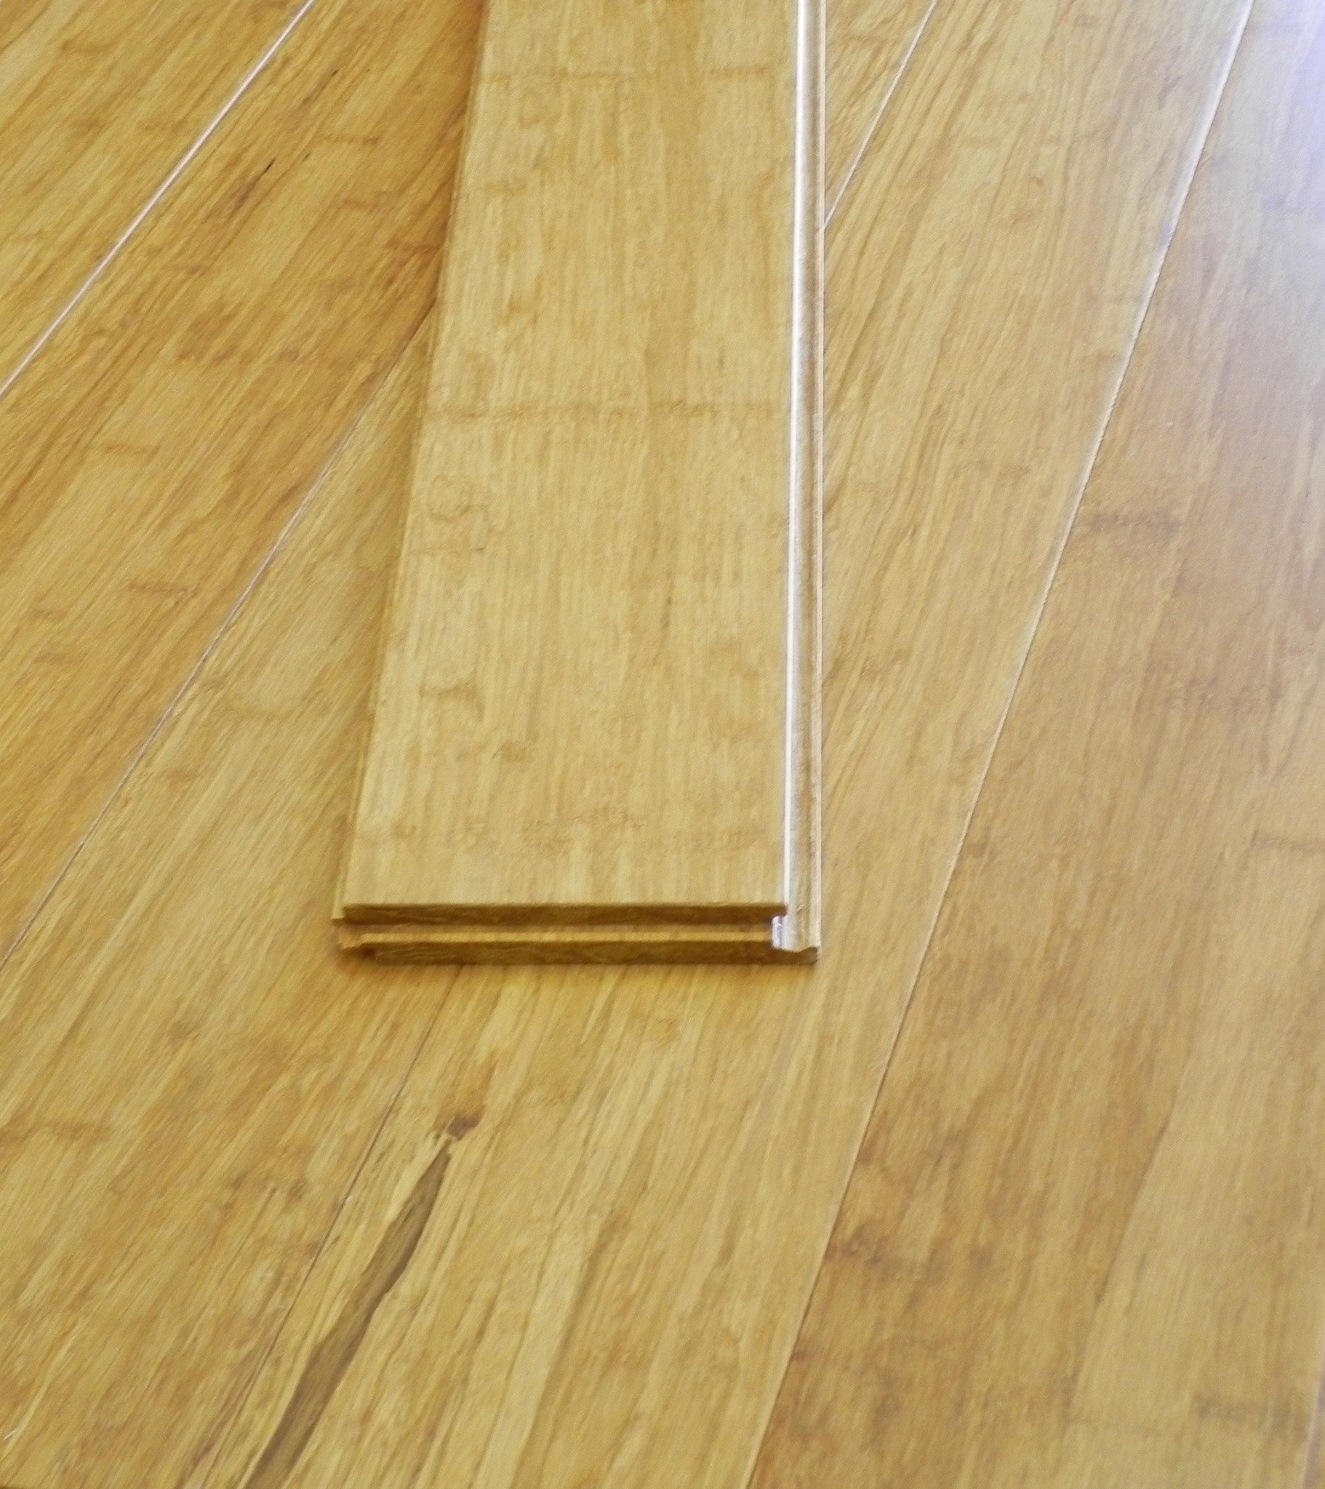 Strand woven bamboo flooring adelaide floor n decor for Bamboo flooring outdoor decking